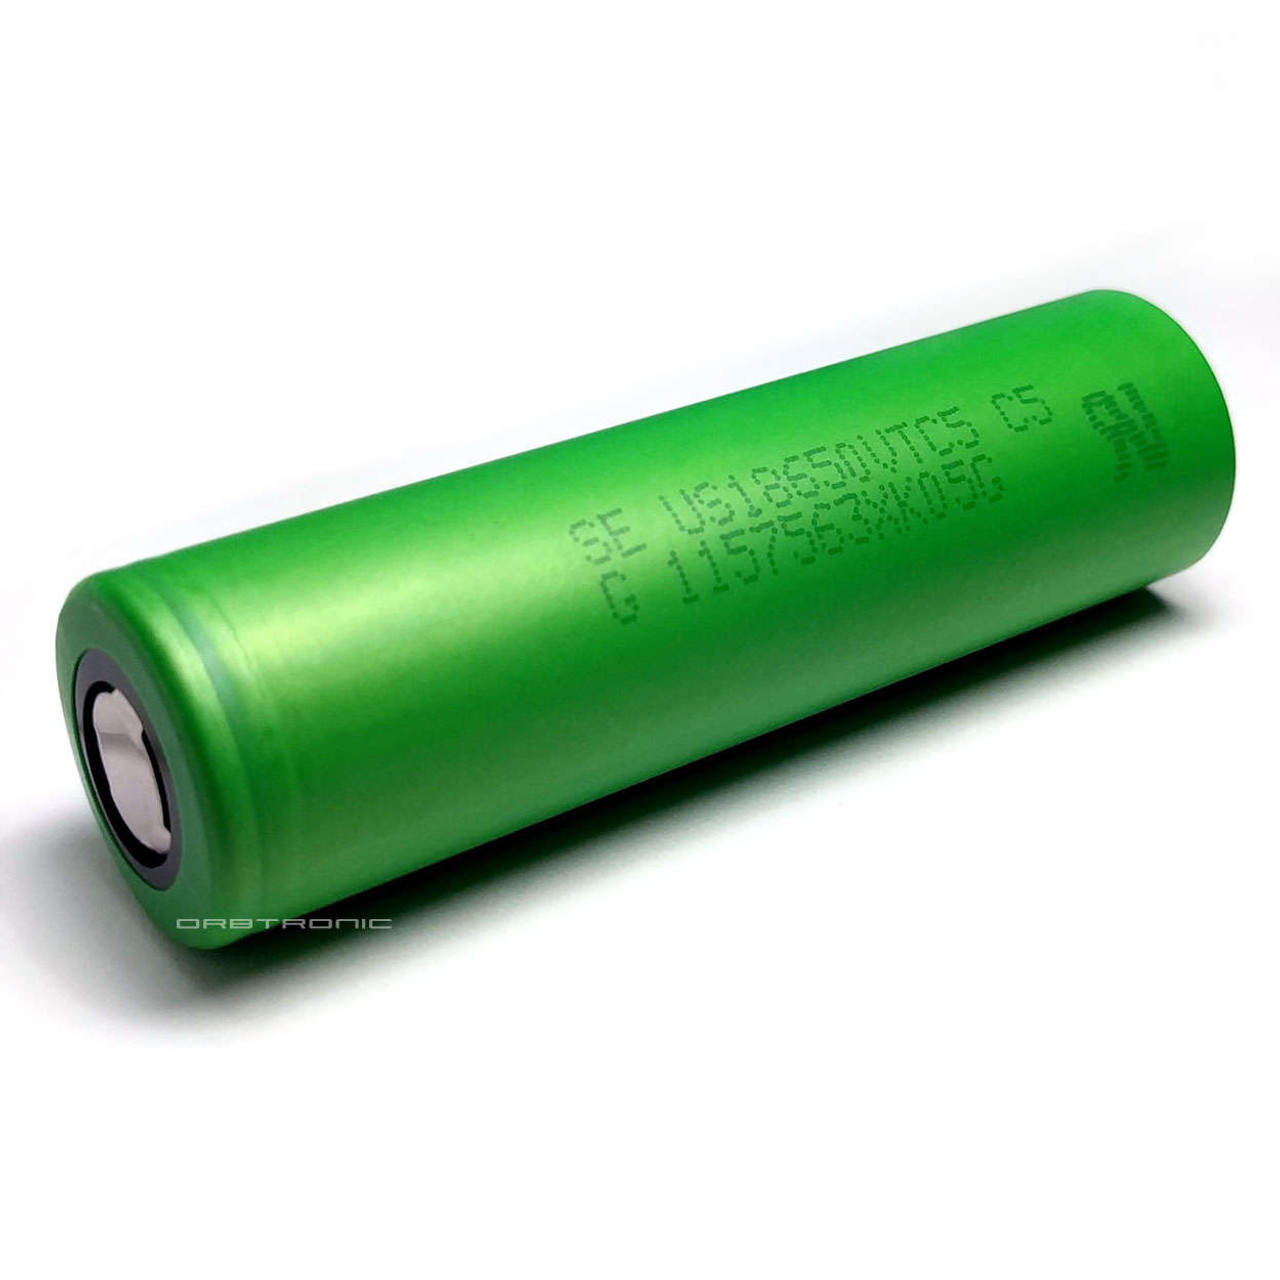 Sony Vtc5 18650 Rechargeable Battery Authentic Us18650vtc5 Baterai Recharge Aaa Imr High Drain 2600mah Flat Top